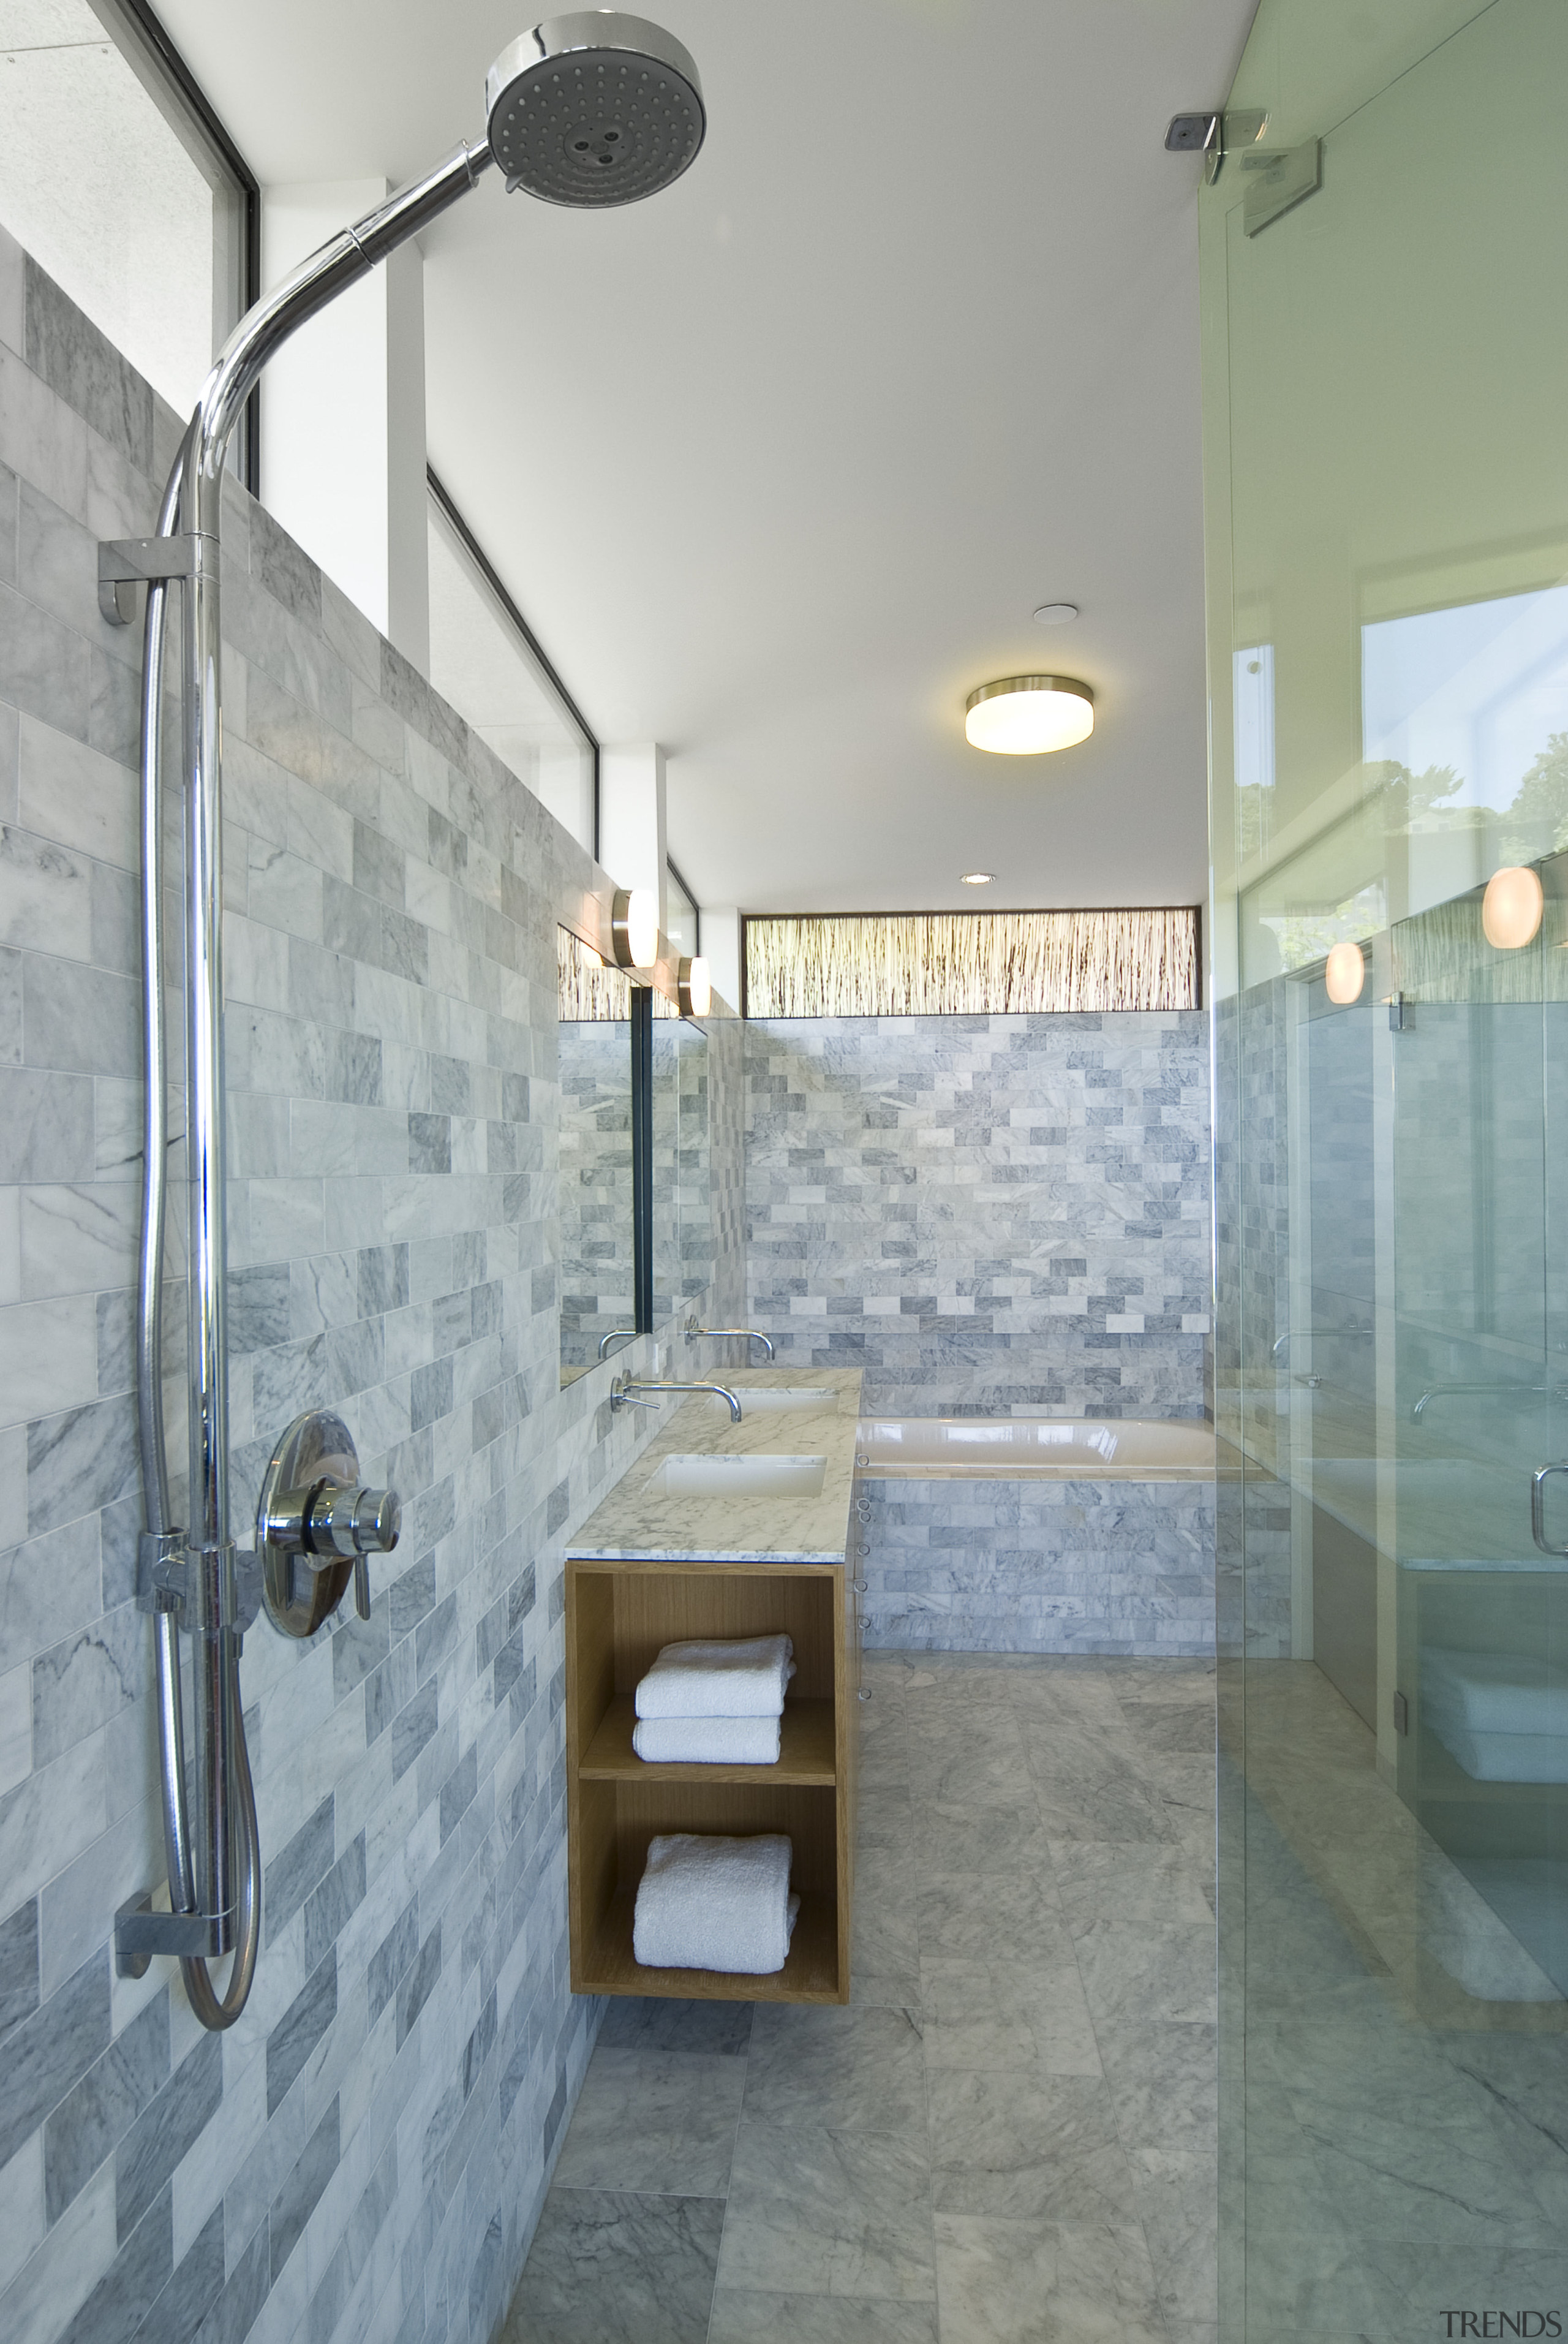 Trends] | View of a bathroom which features a marble tiled shower ...